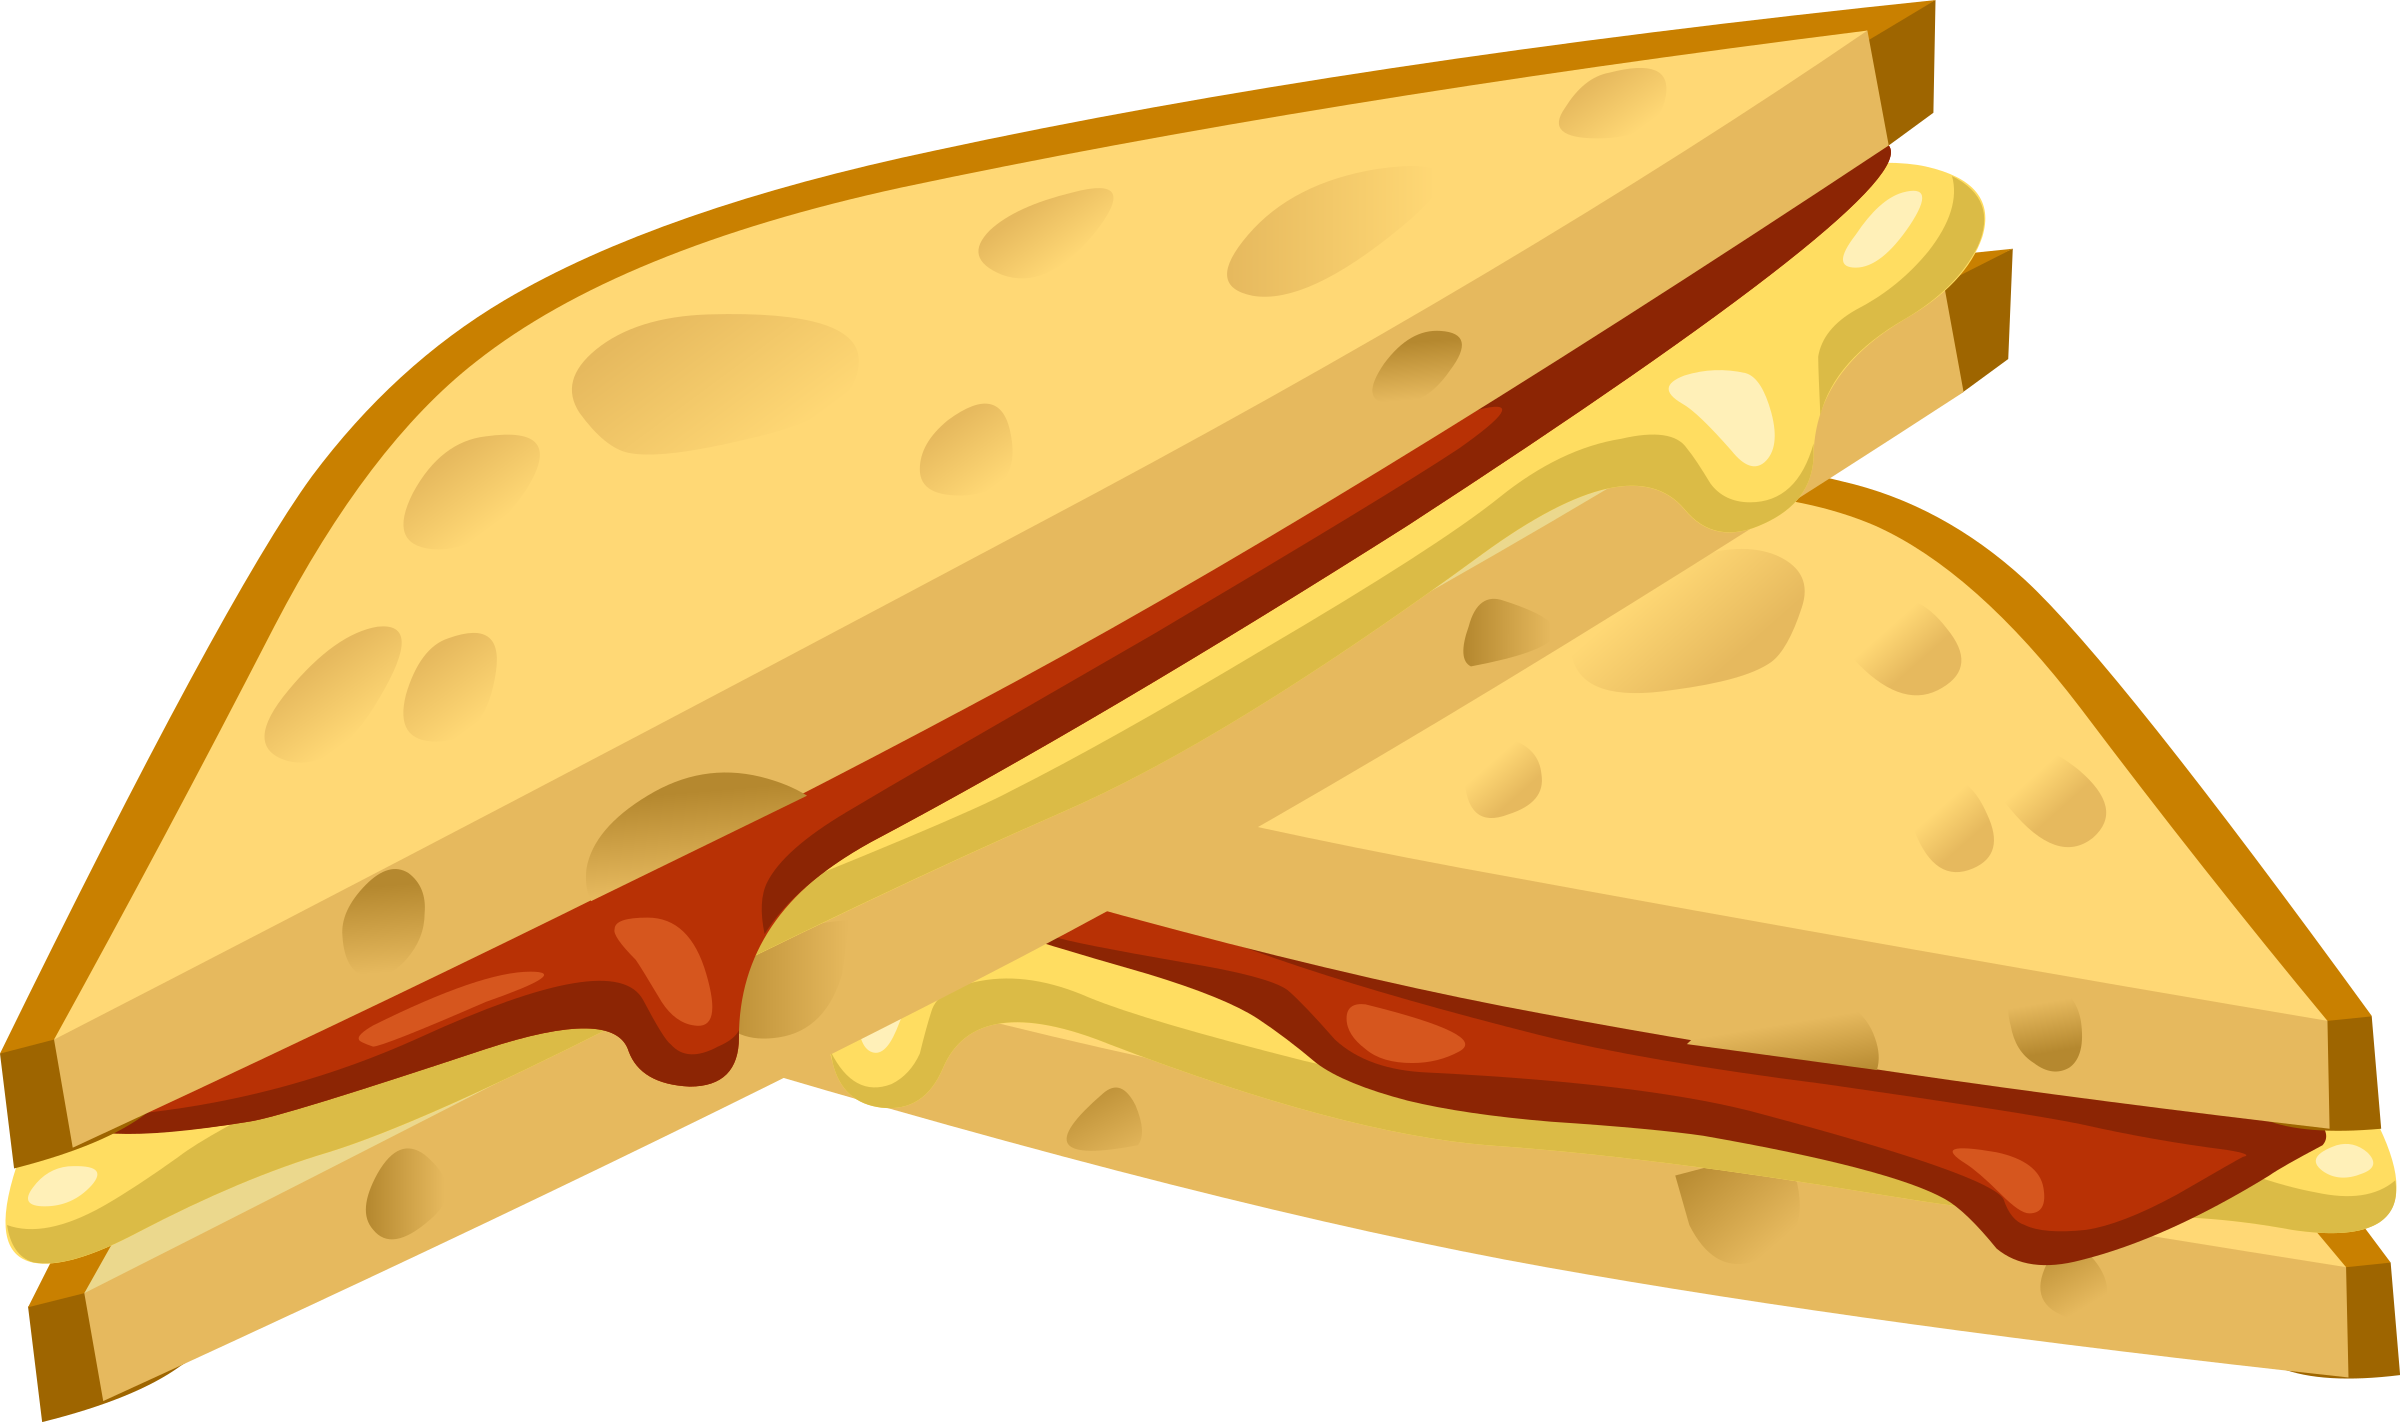 Free cliparts sandwiches download. Yearbook clipart say cheese